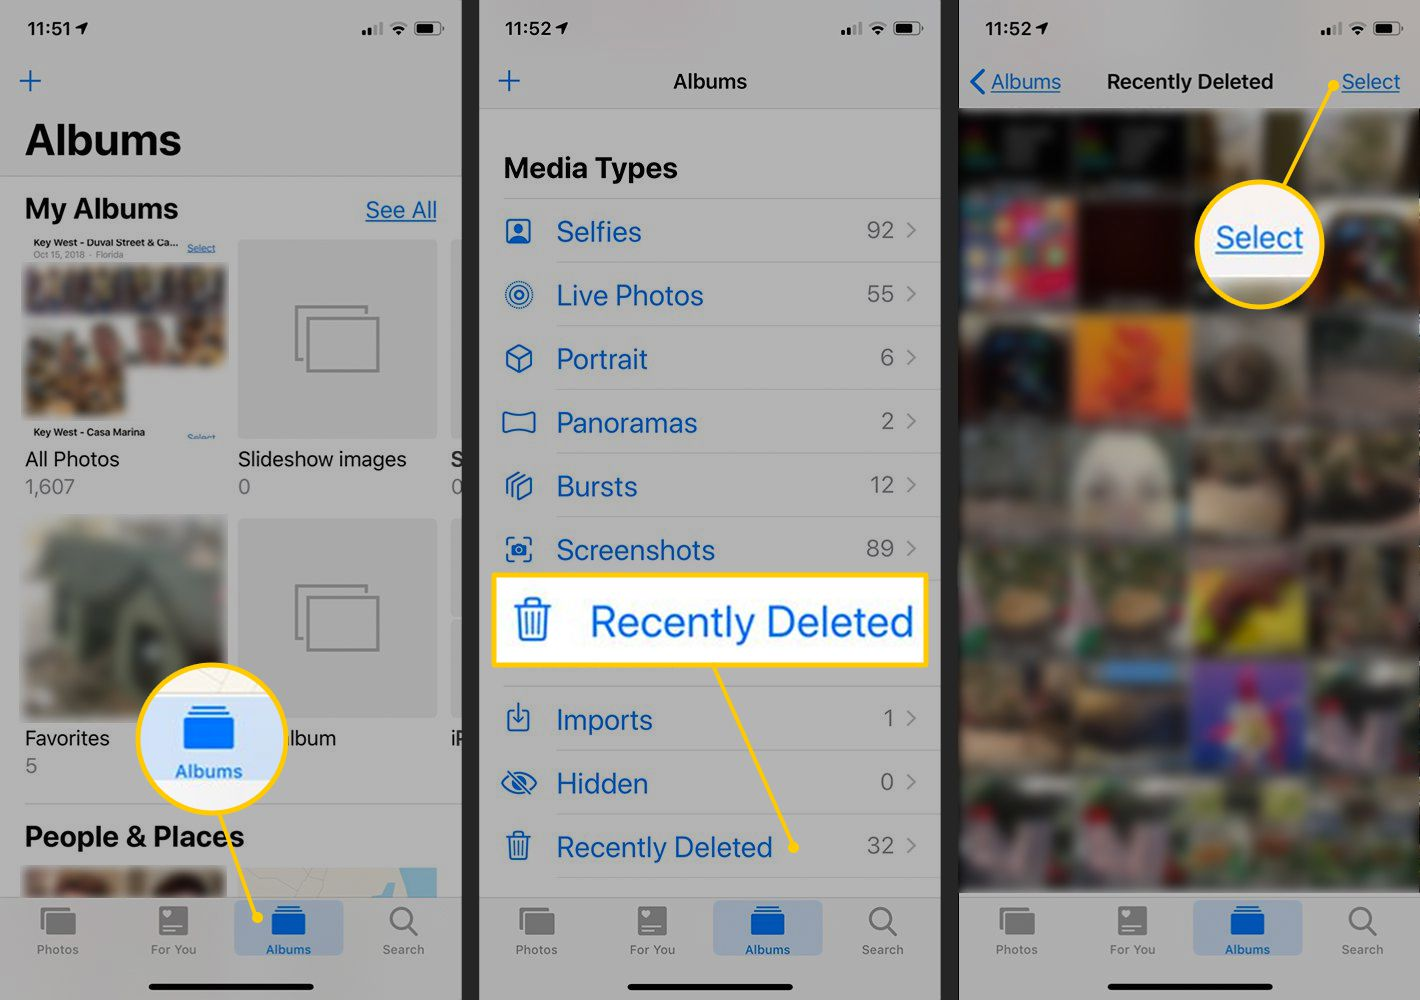 Albums, Recently Deleted, Select buttons in iOS Photos app